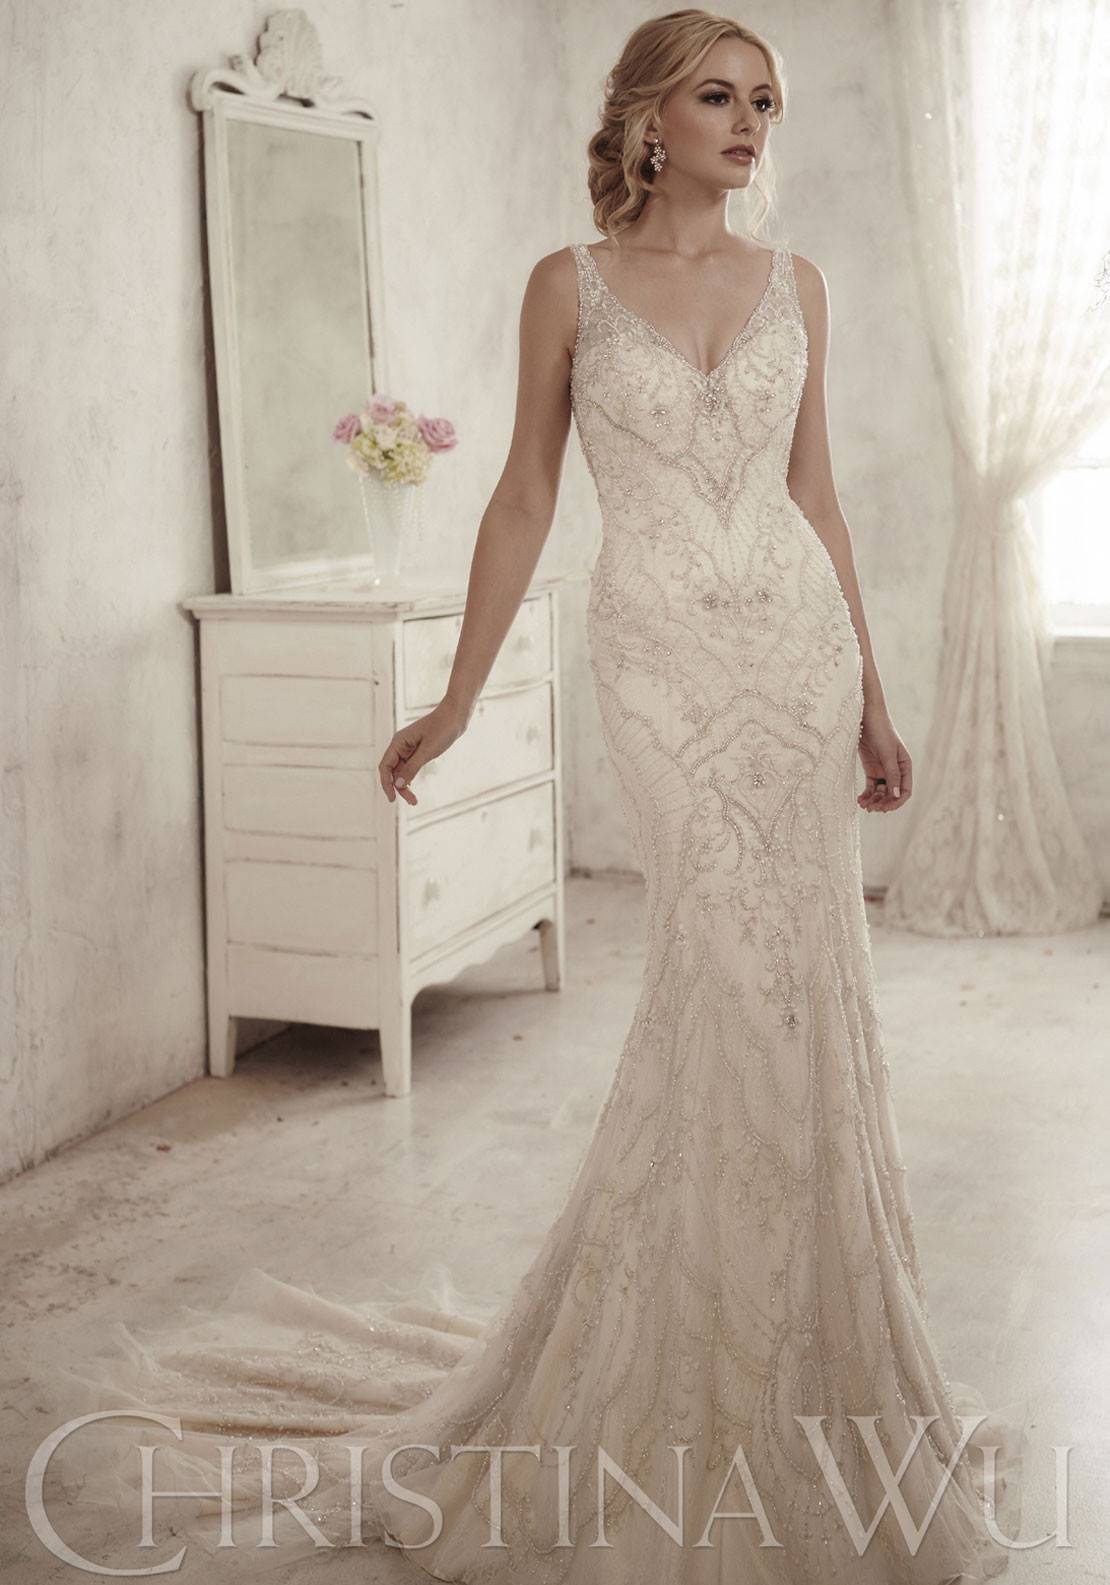 CHRISTINA WU BRIDAL 10S IVL